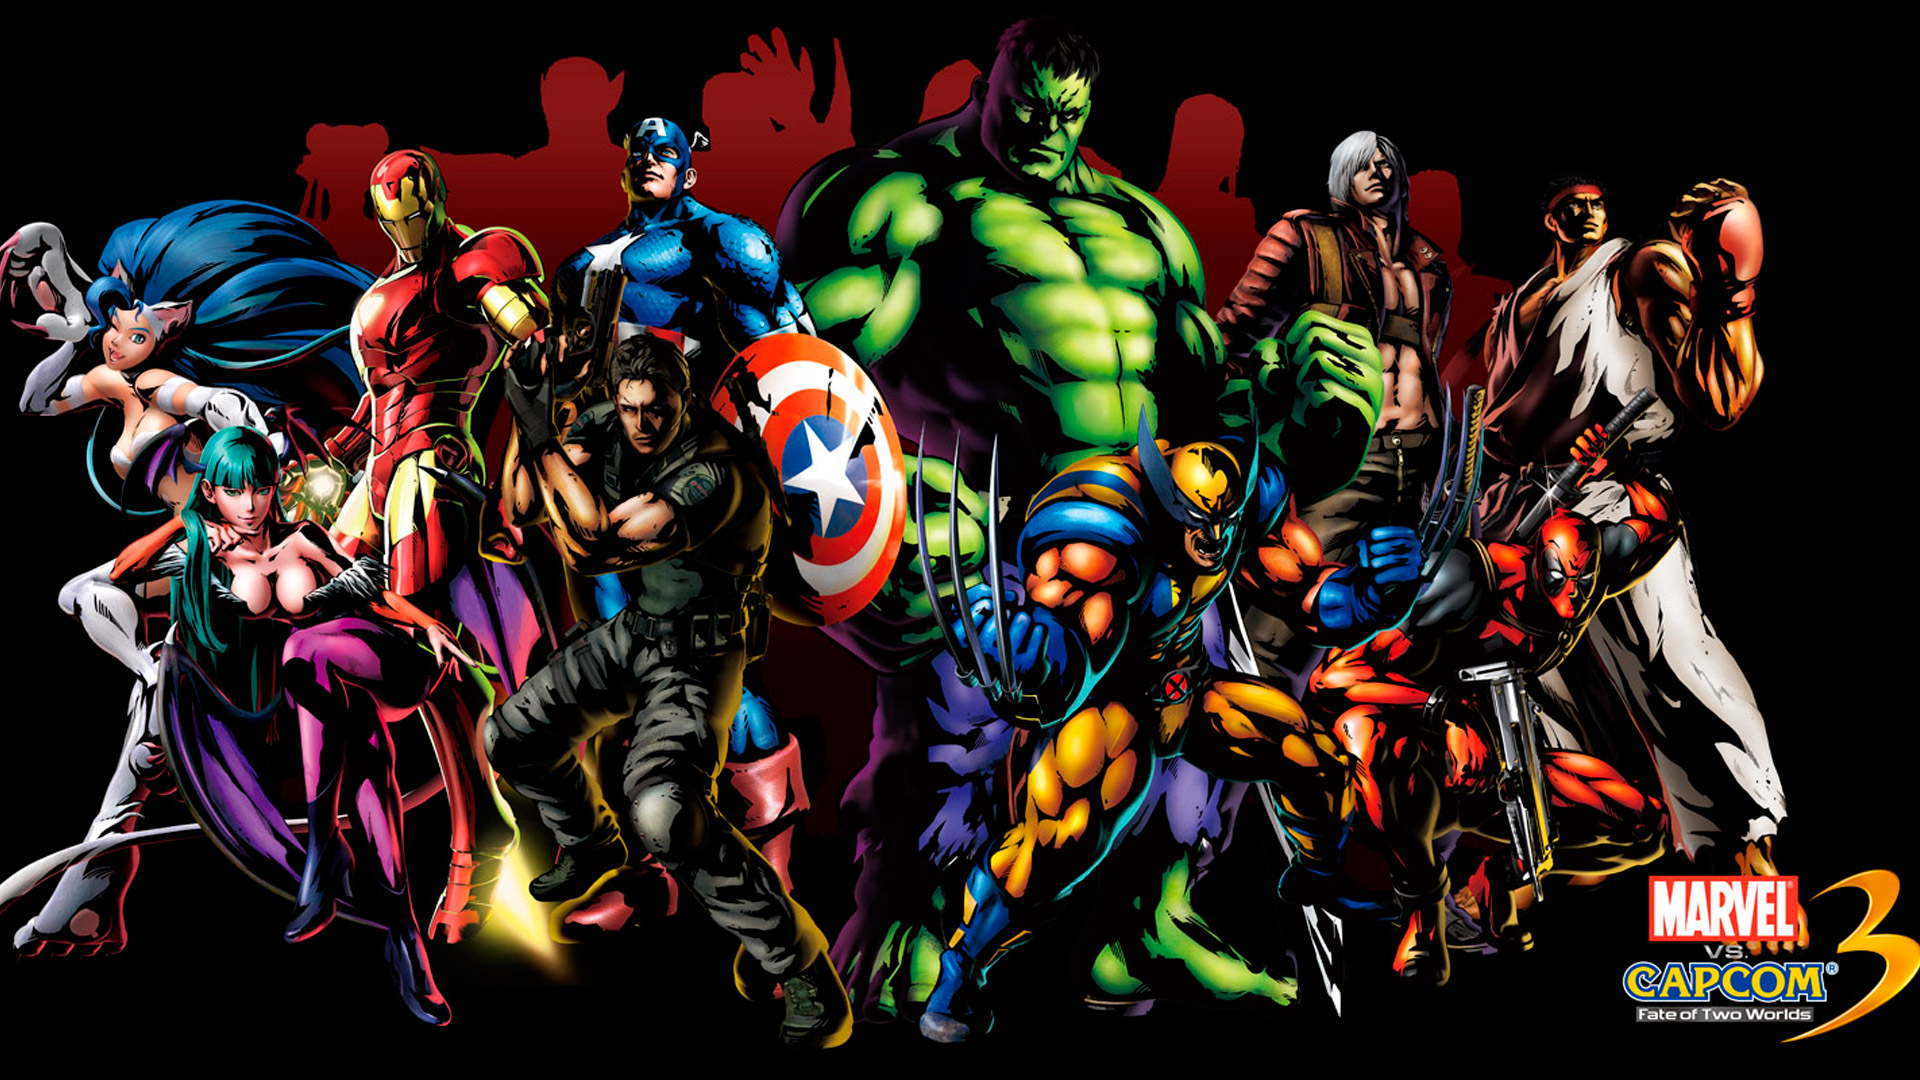 Marvel Zombies Wallpaper Hd 1920x1080